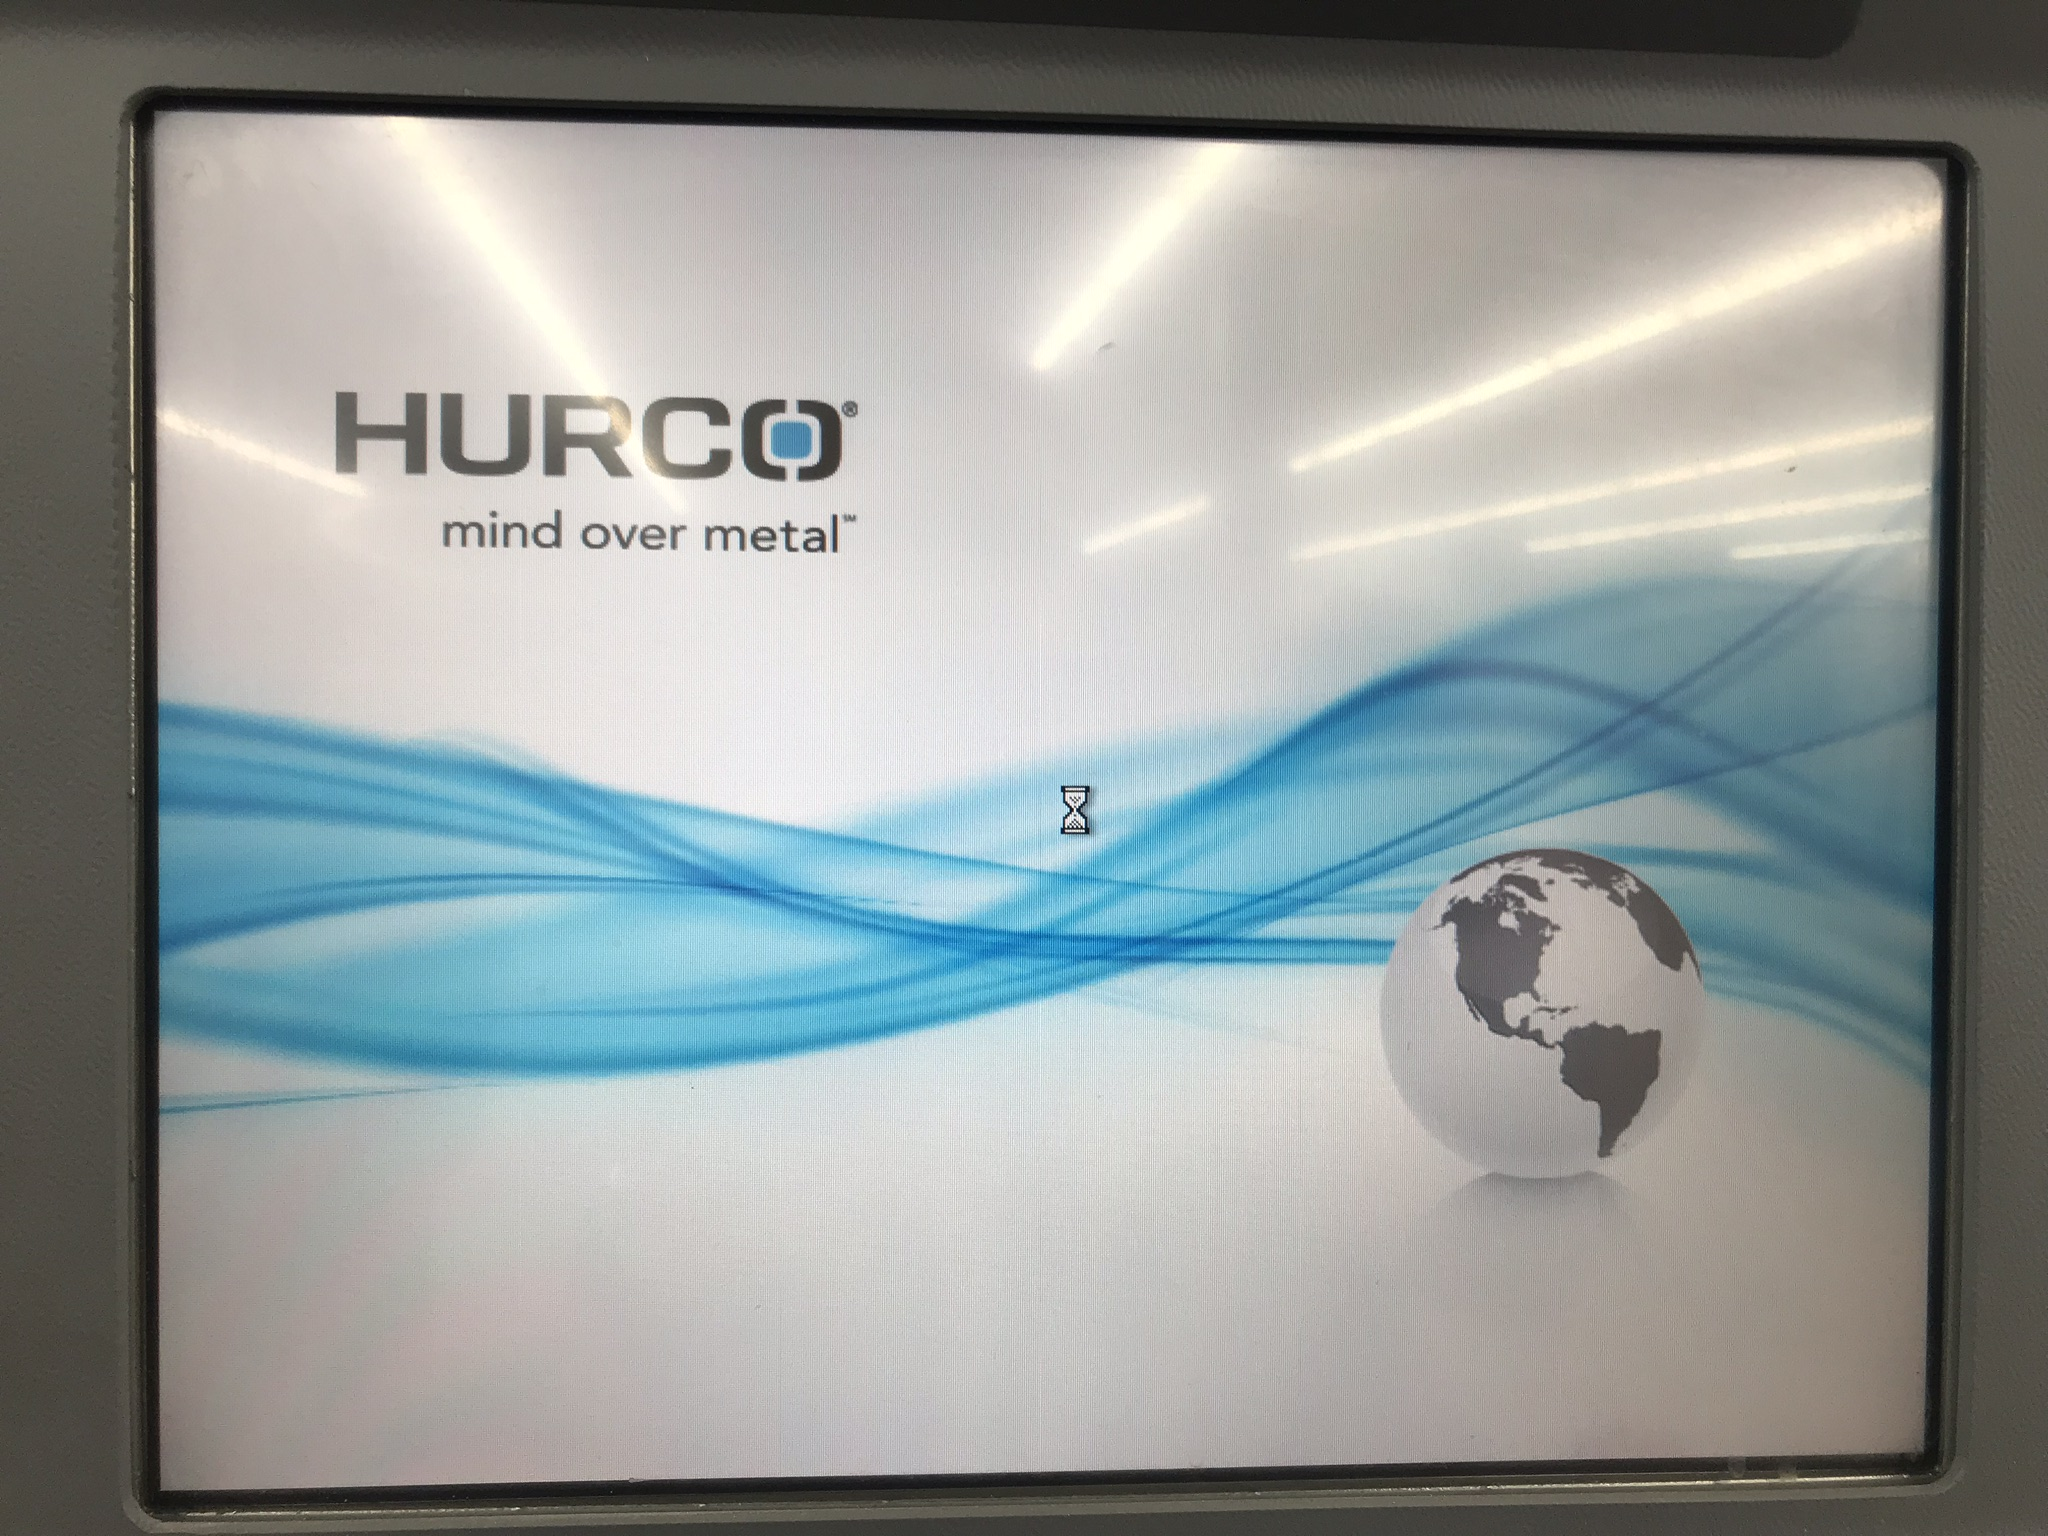 Hurco TM-6i CNC Lathe, Winmax Classic Package, Rigid Tap, Renishaw Presetter, Chip Conv, 400 Hours! - Image 12 of 13